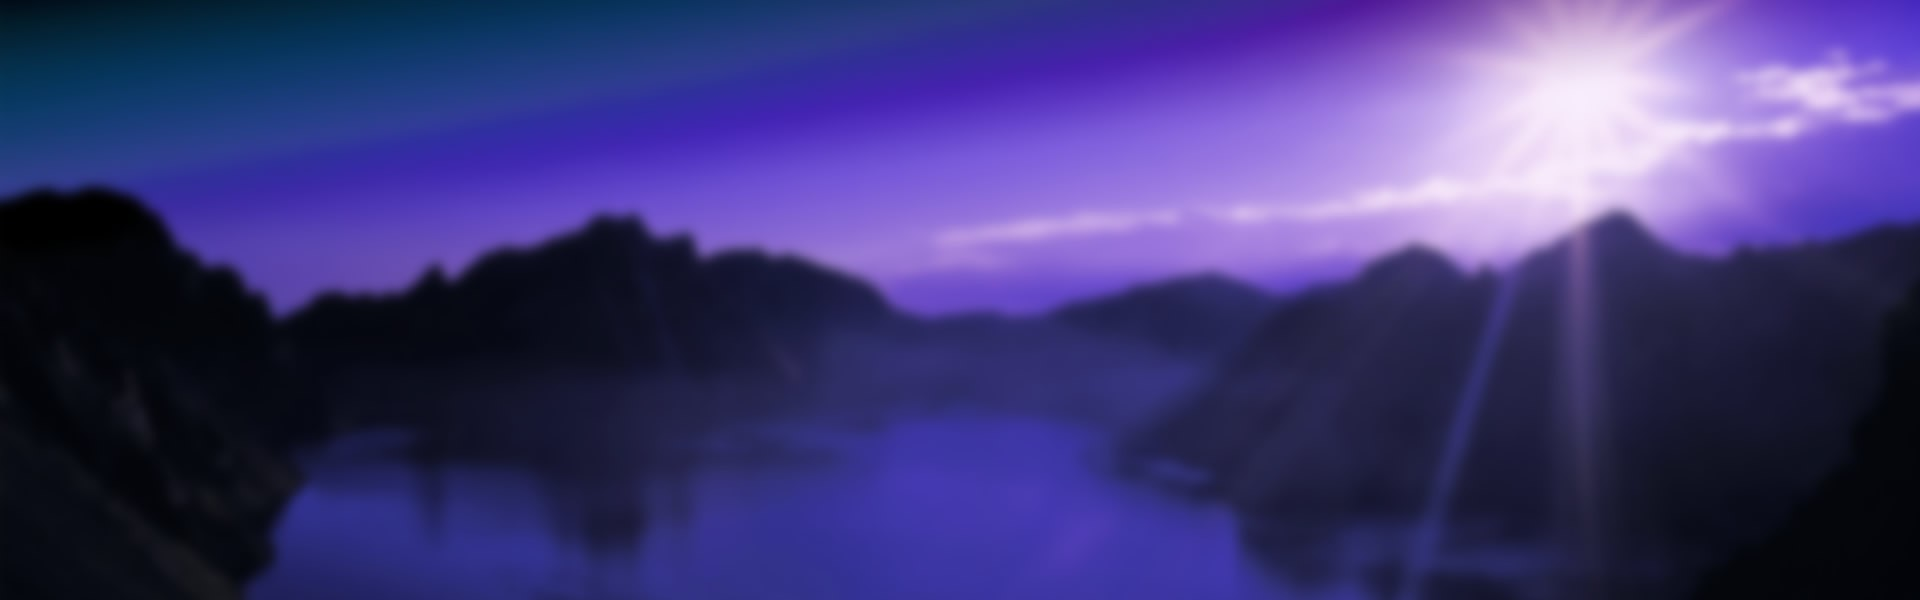 purple-mountain-majesty-blurred